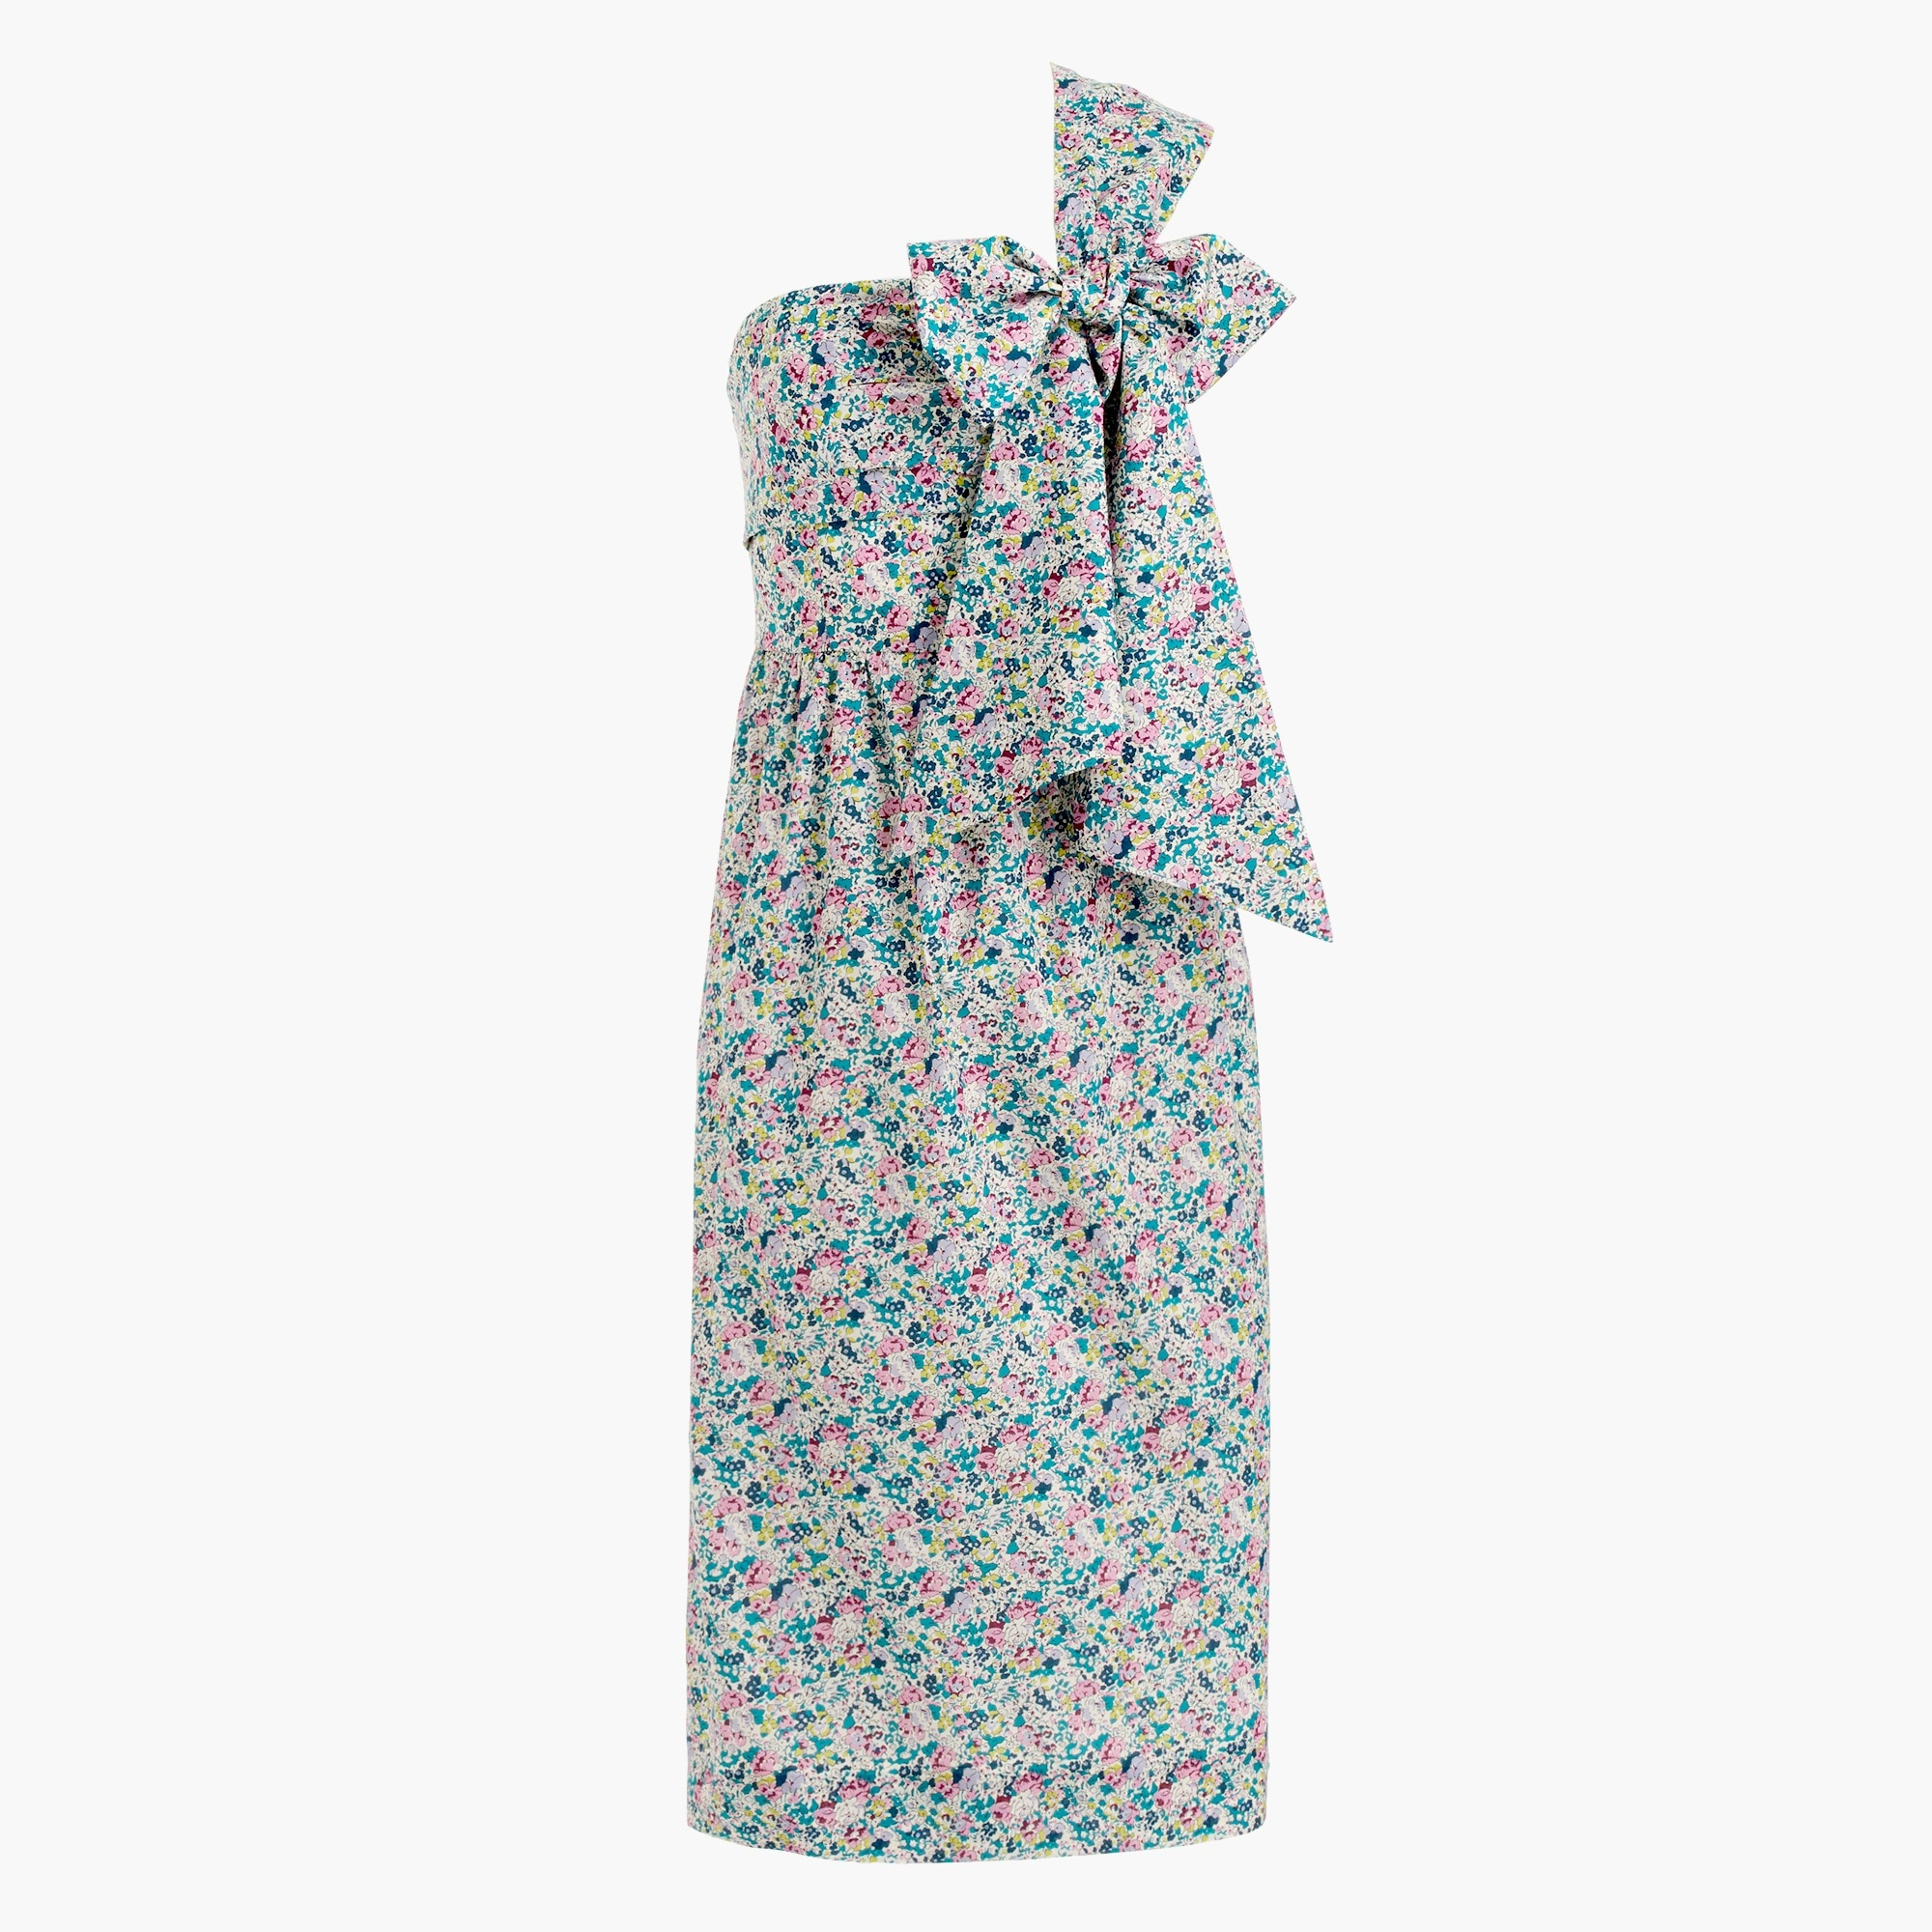 One-shoulder tie dress in Liberty® Claire-Aude floral